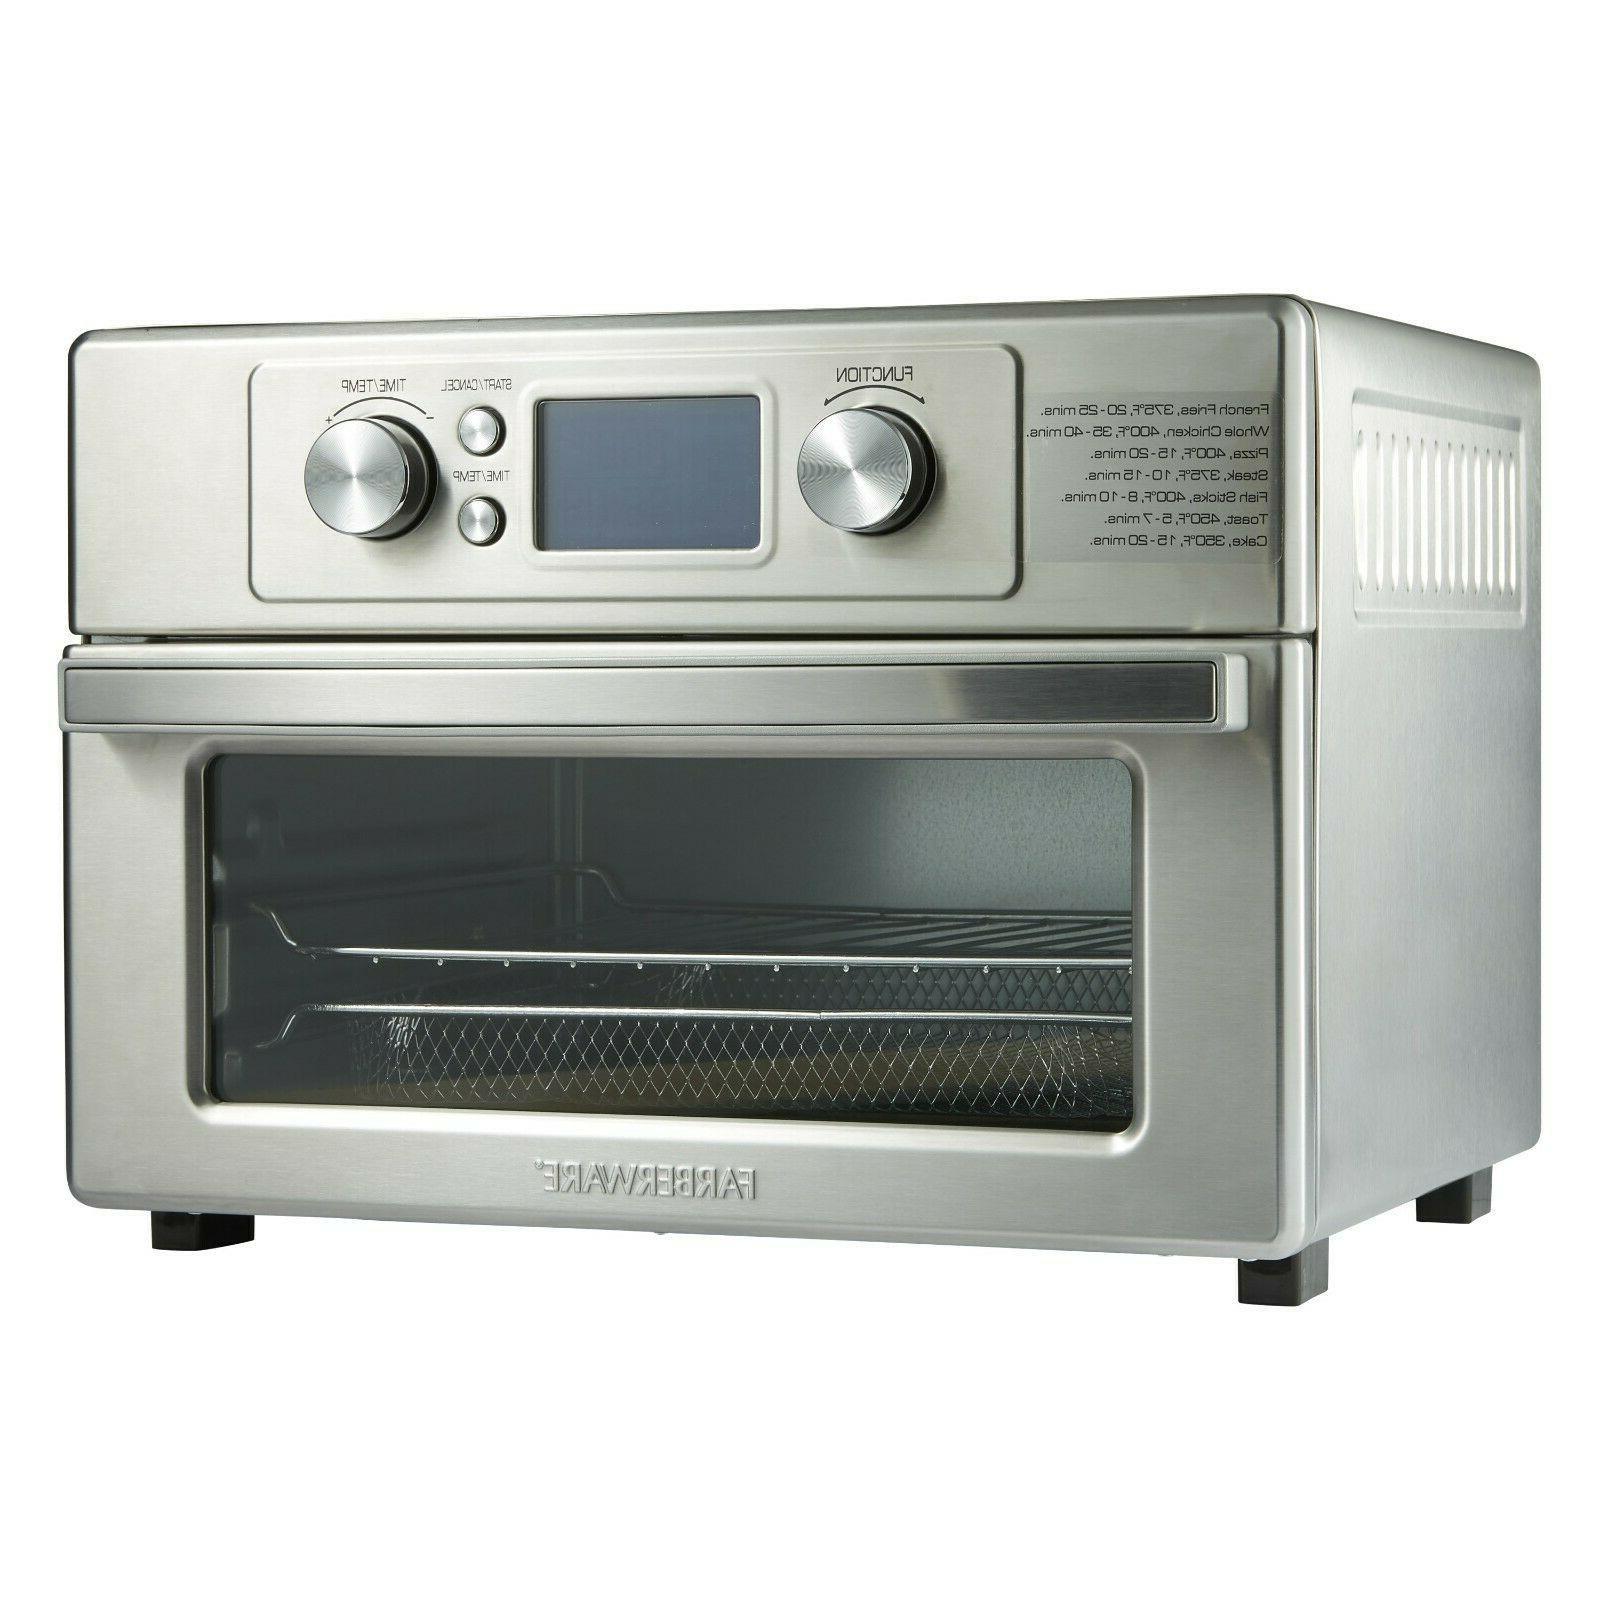 convection oven toaster air fryer fast cooking